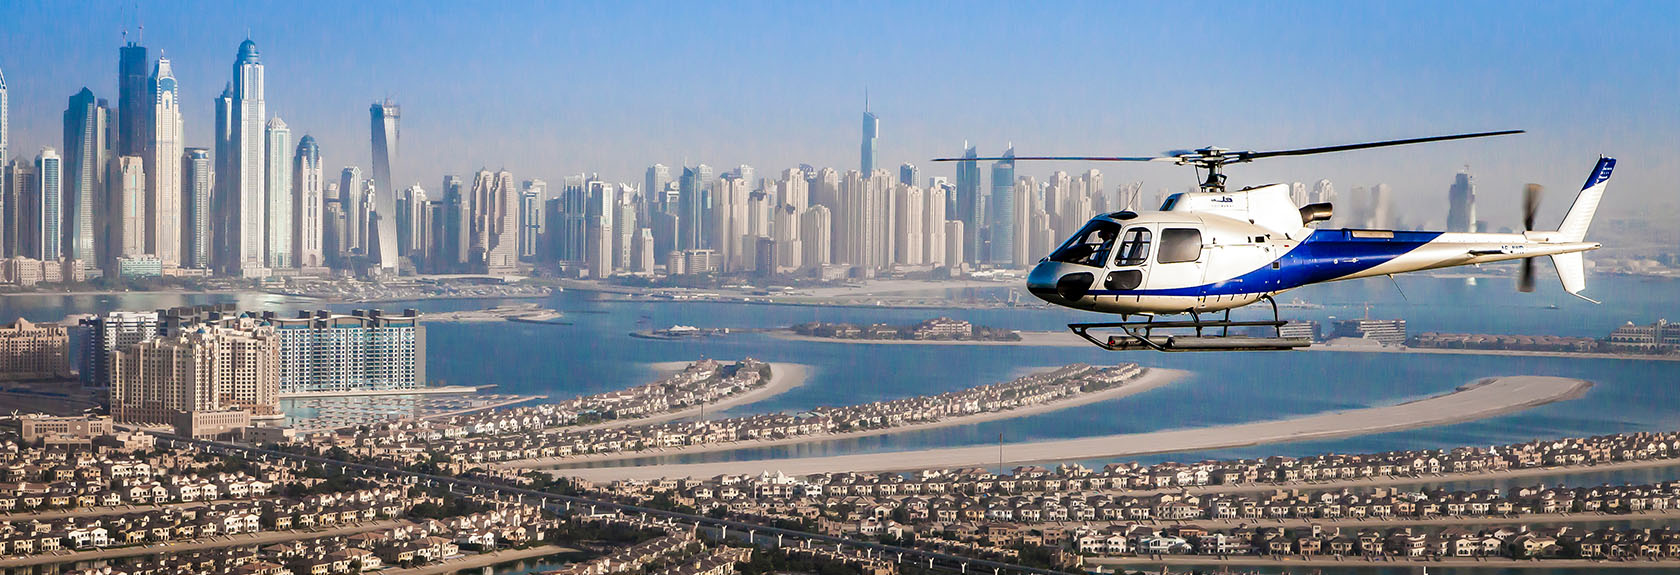 Helicopter flights over Dubai